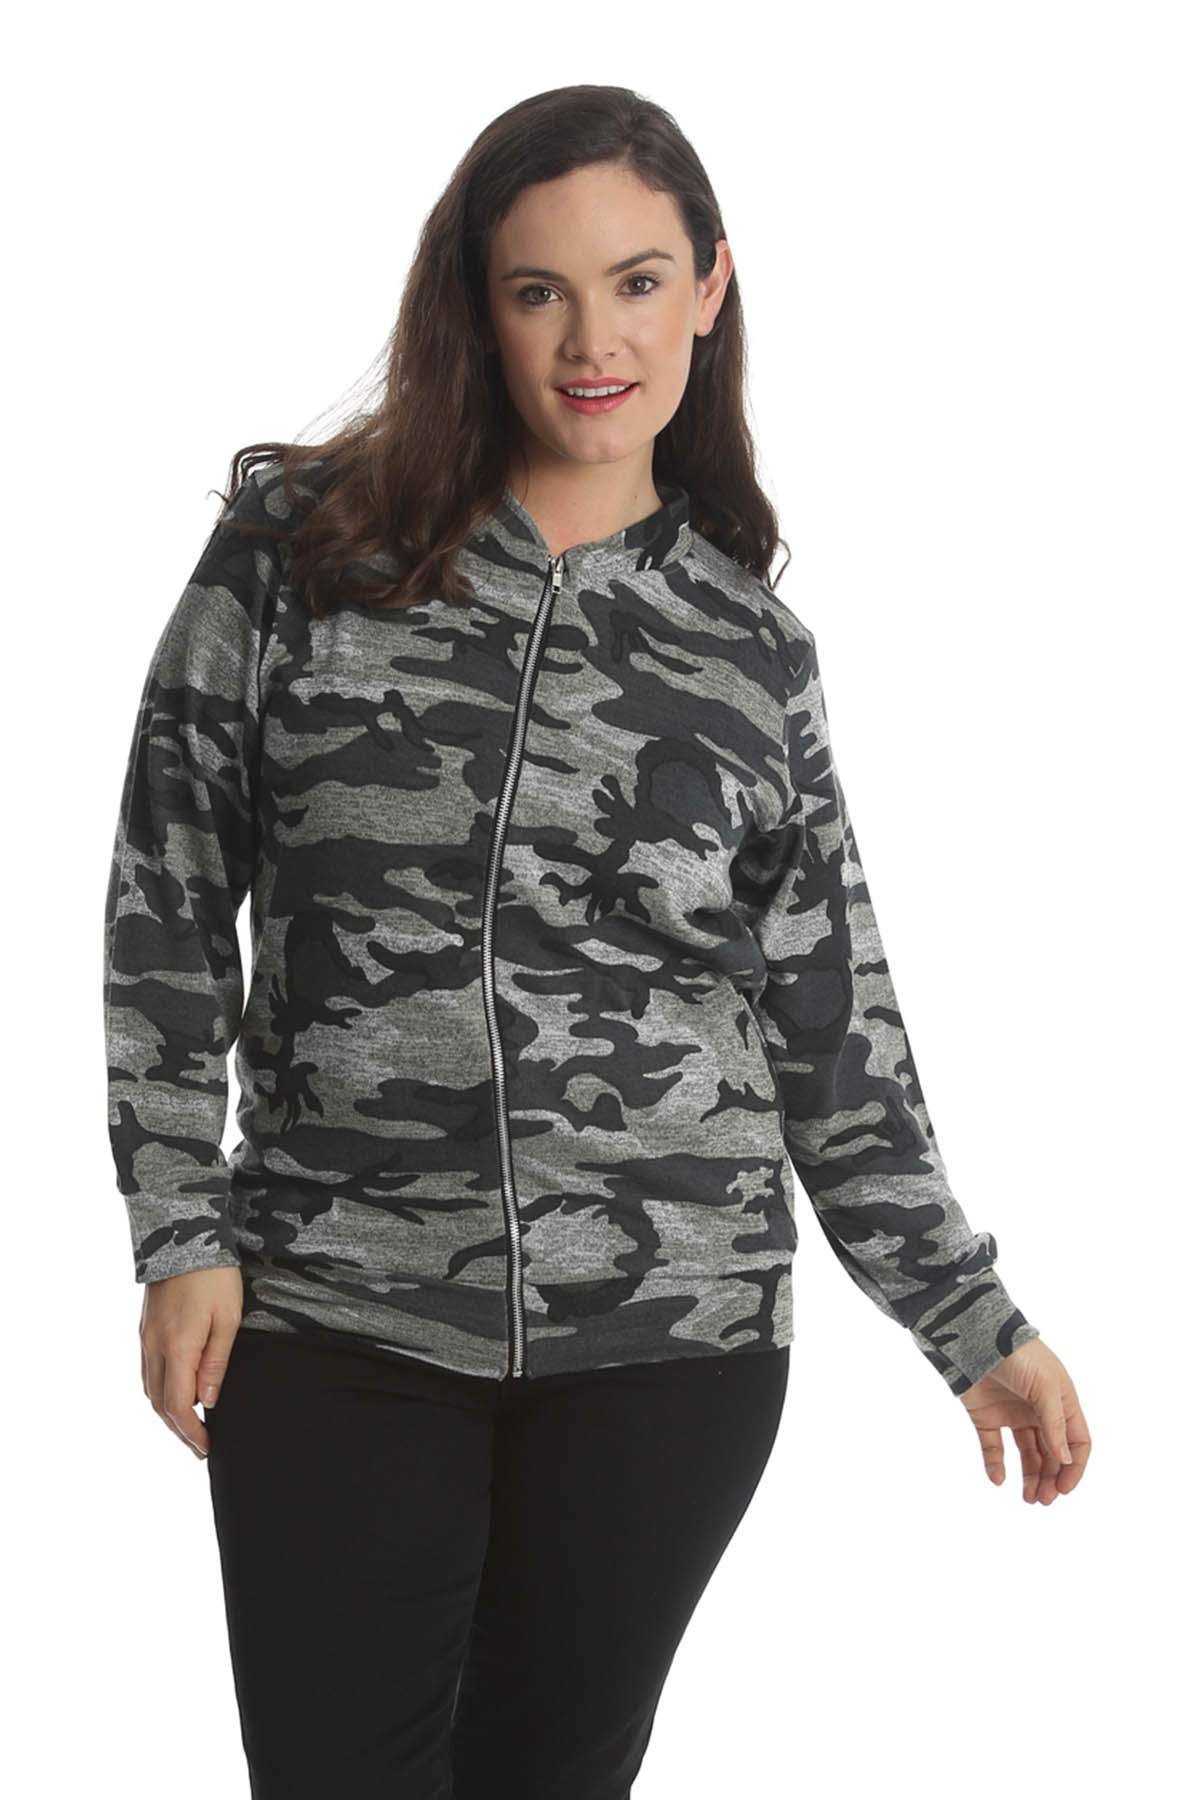 New Ladies Jacket Womens Plus Size Bomber Jacket Army ...